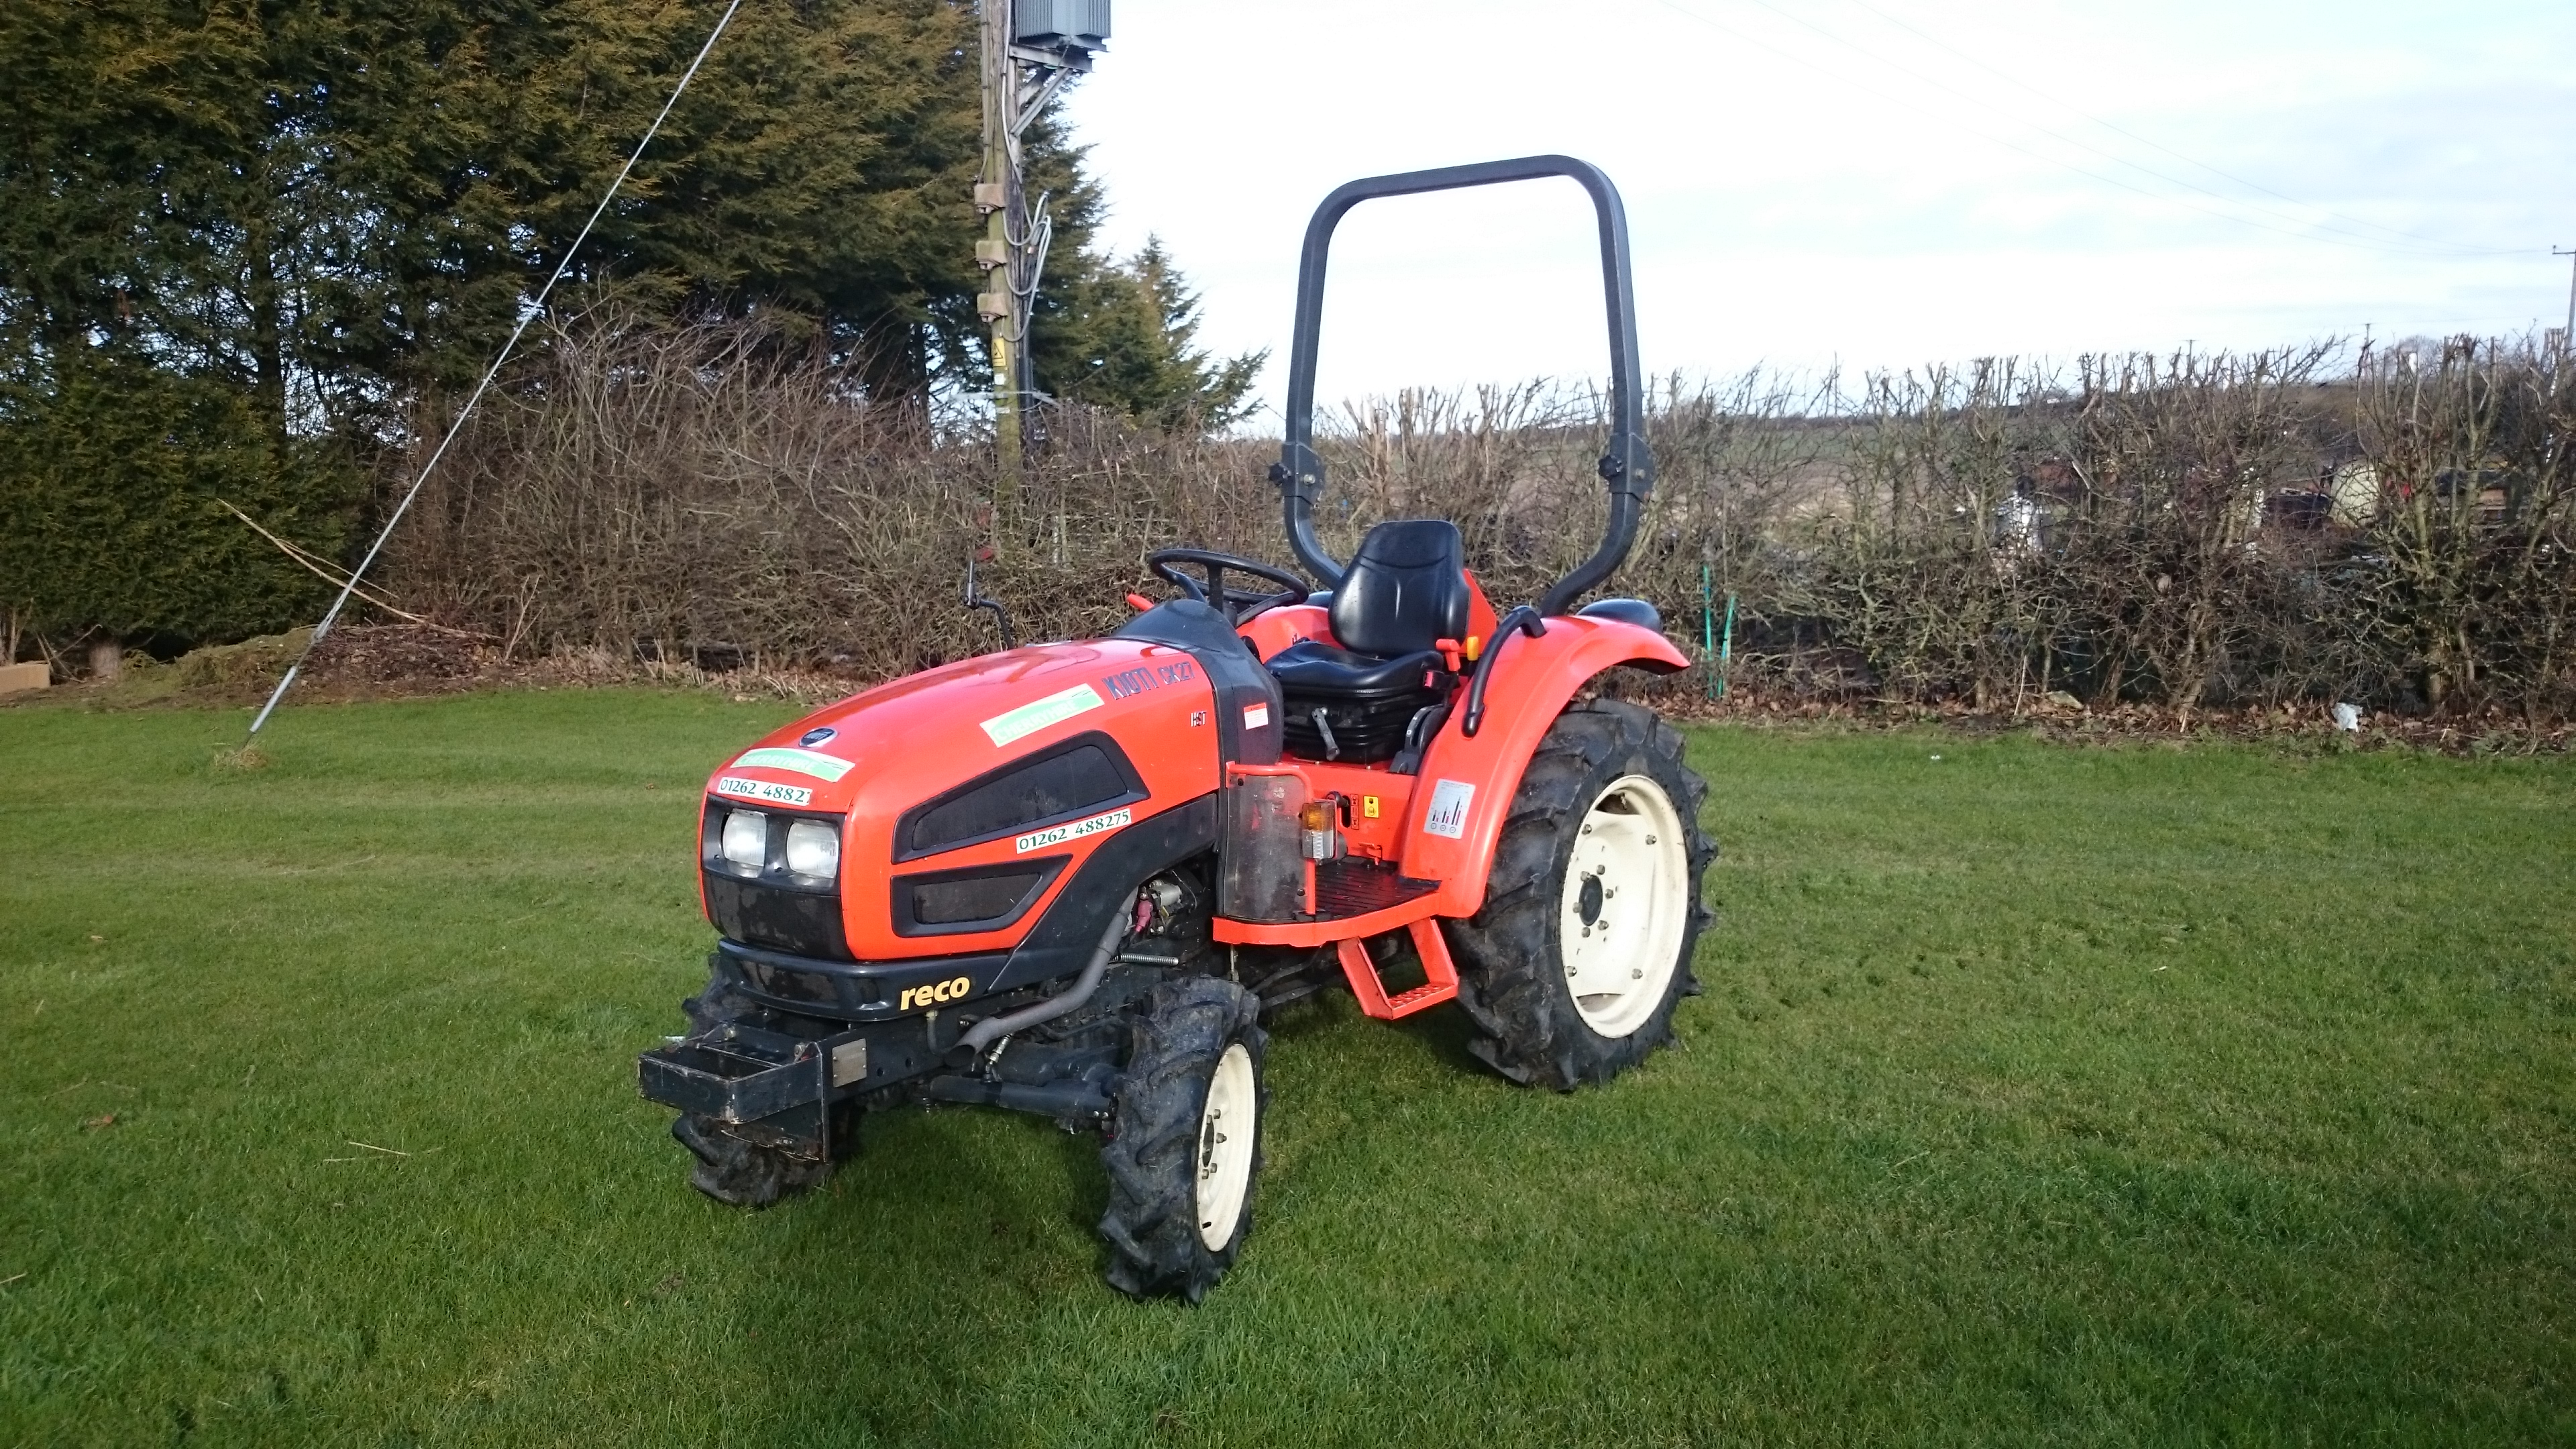 Kioti Compact Tractors : Hire equipment compact tractor cherrys country hardware